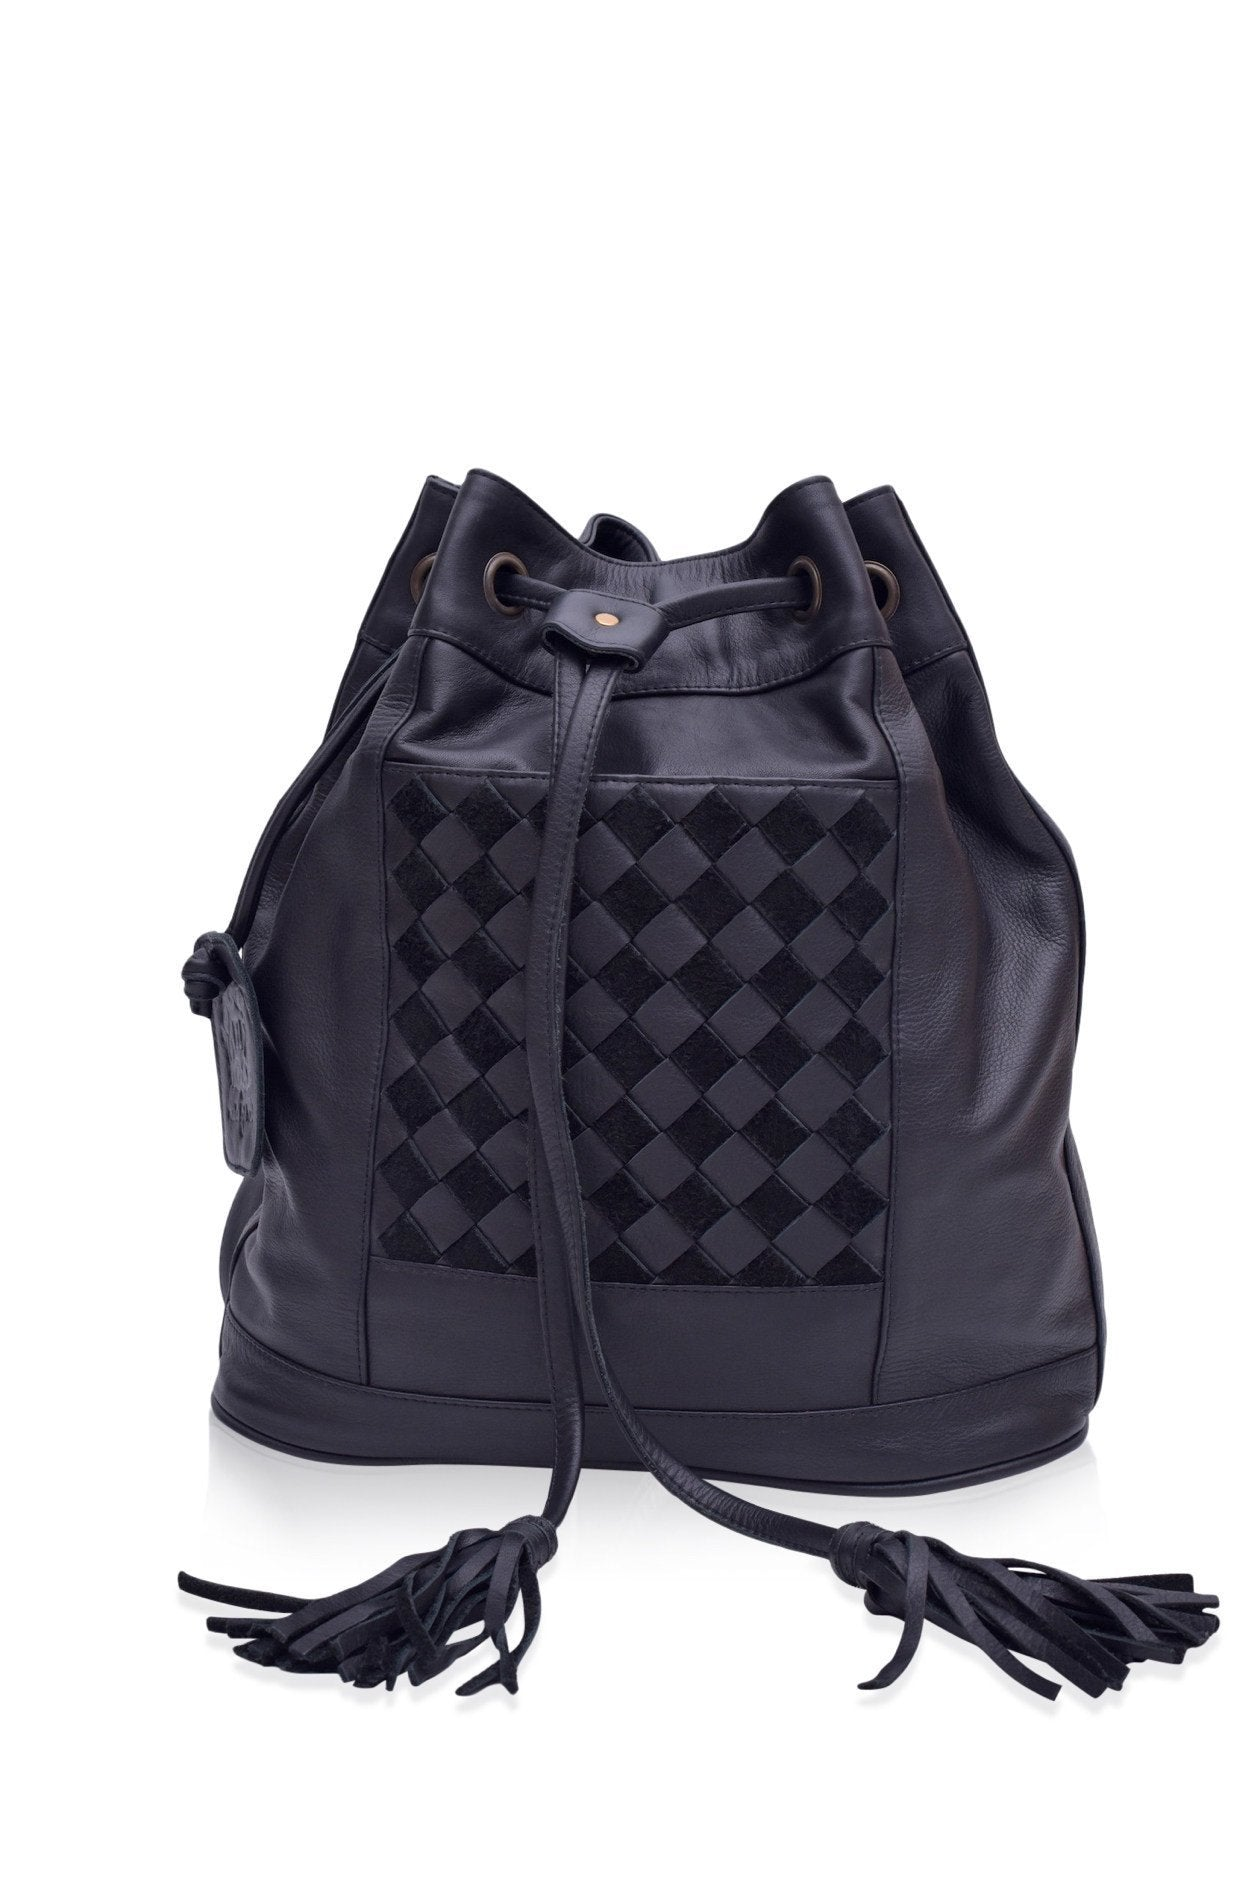 Neverland Convertible Backpack